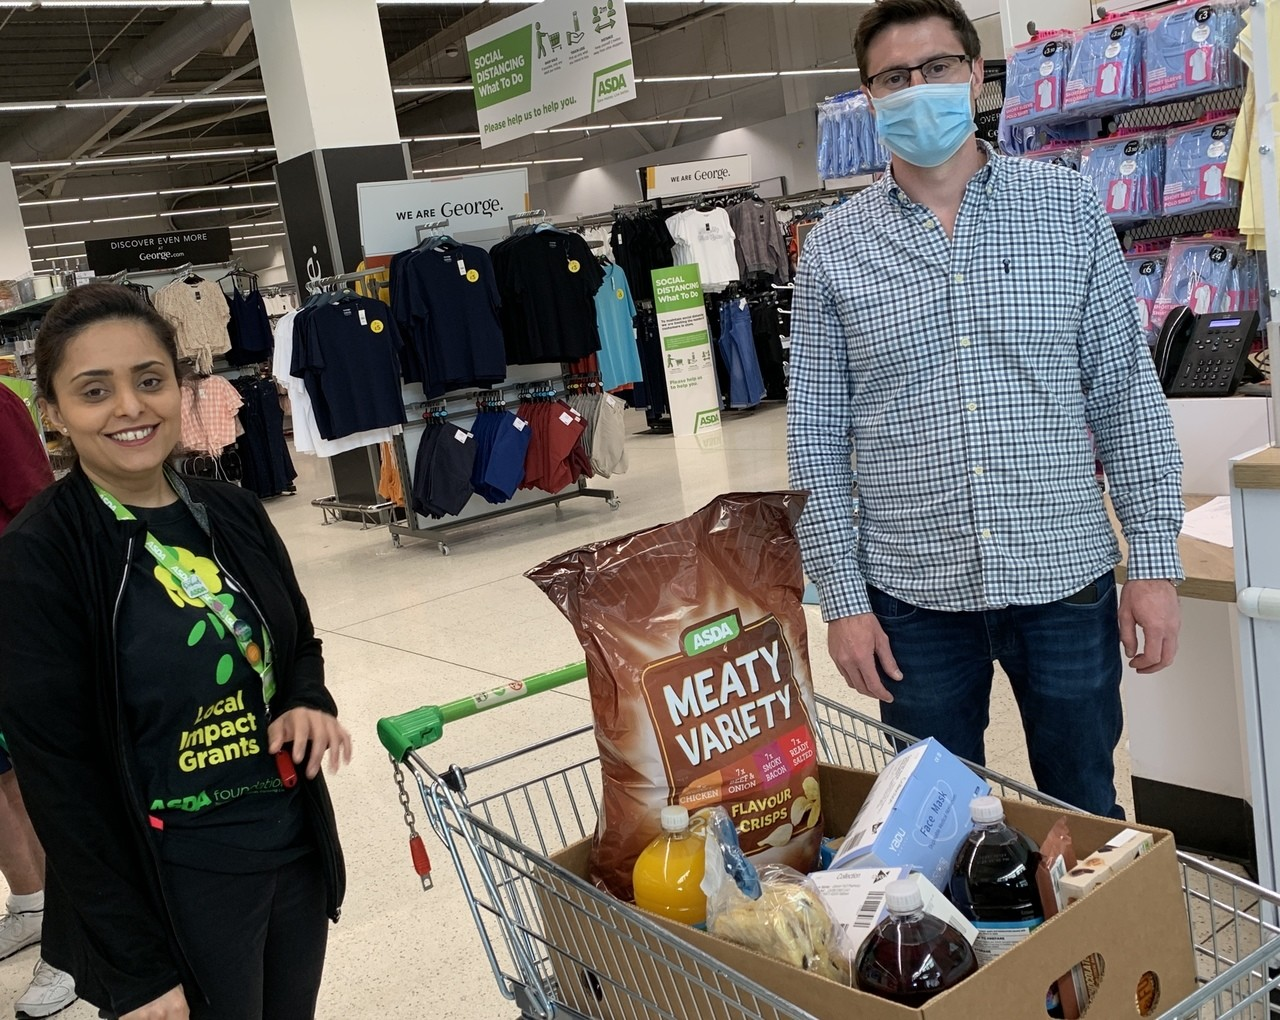 Donations are flying away | Asda Feltham